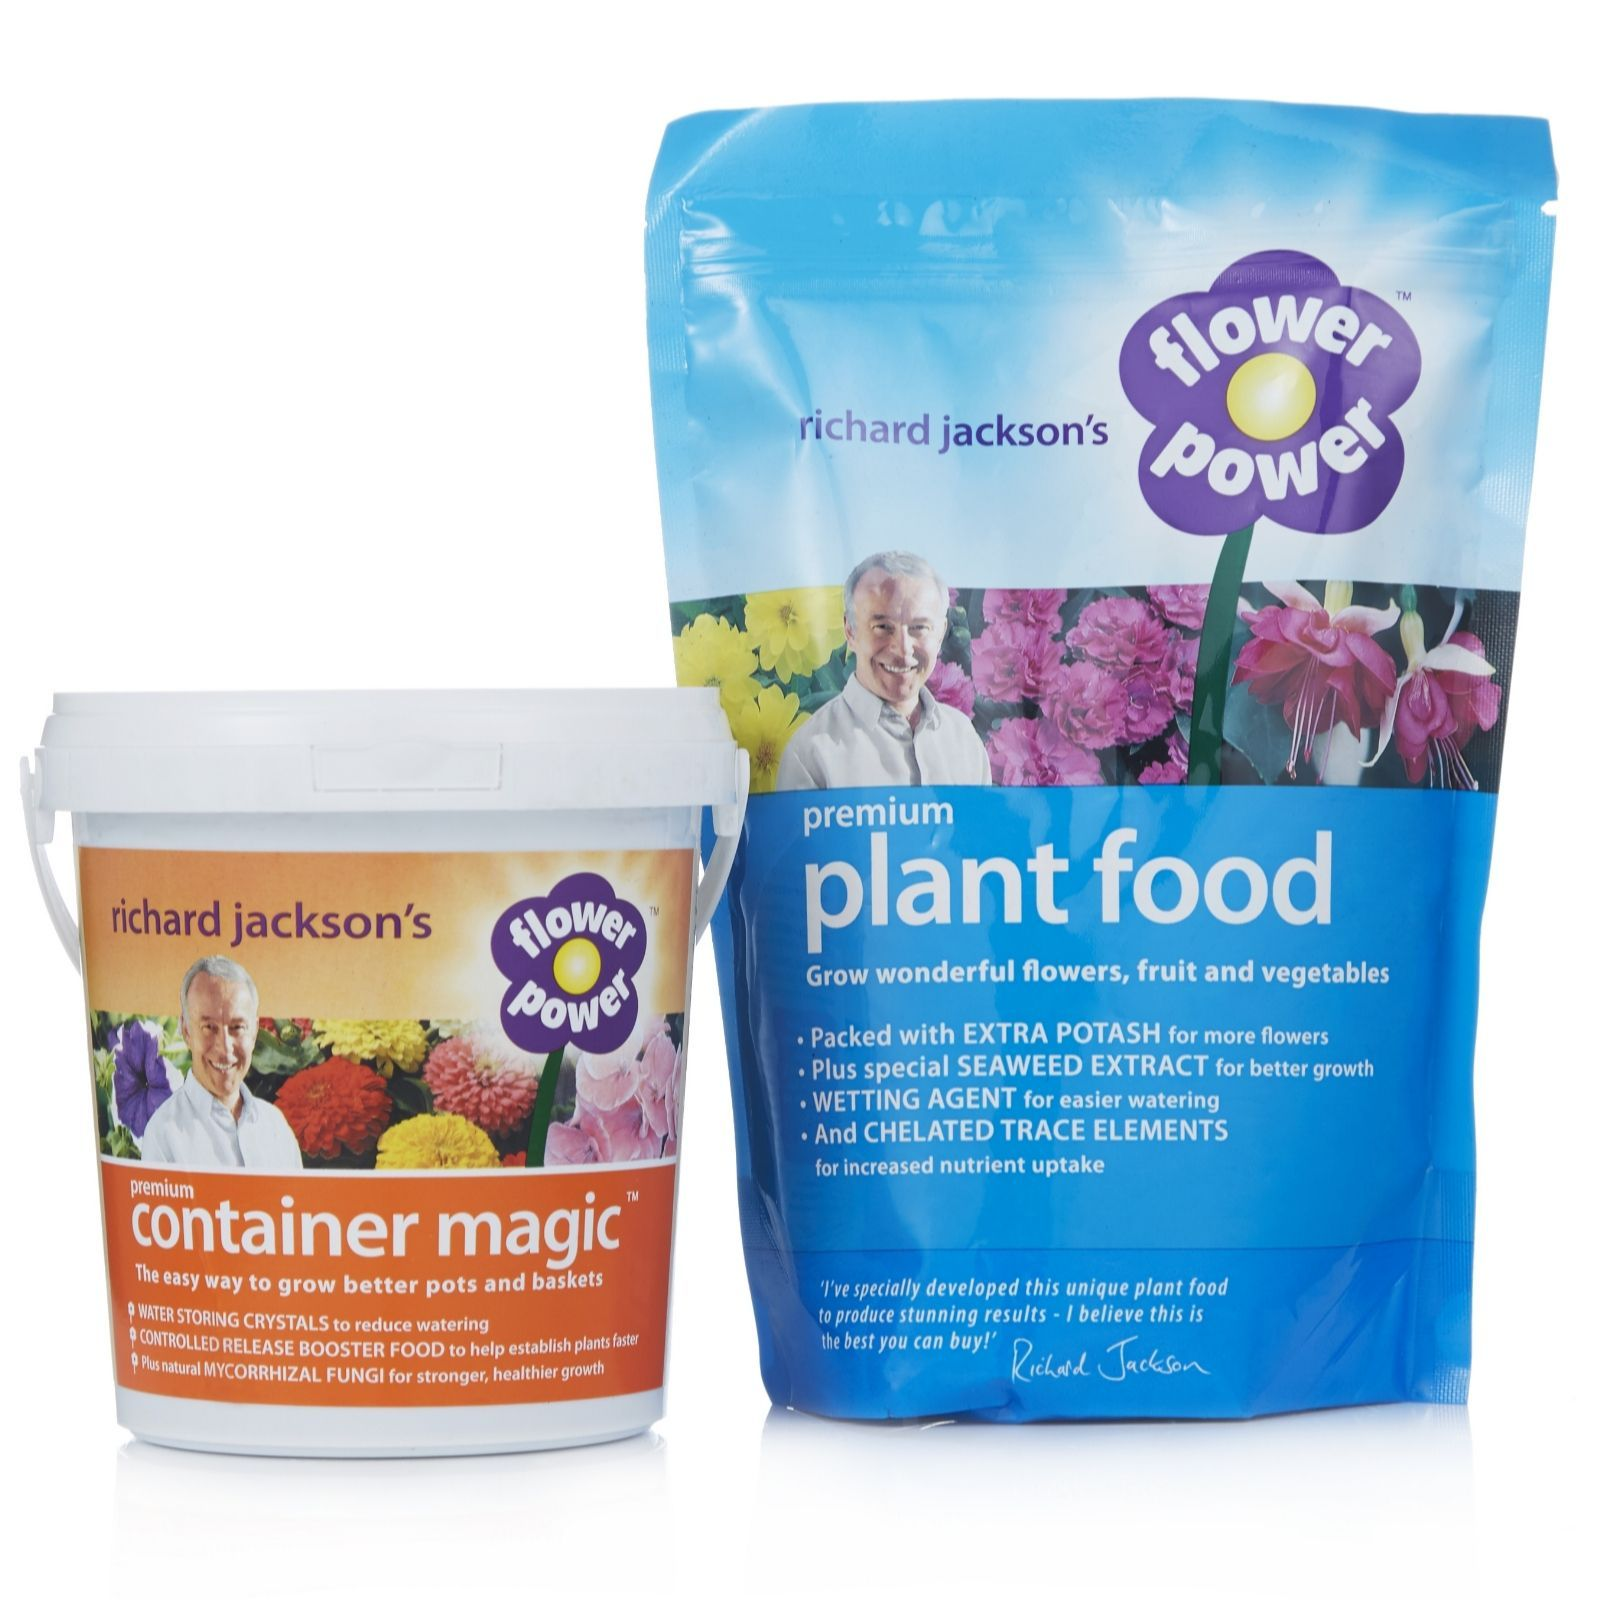 Good A Duo Of Richard Jacksonu0027s Flower Power And Container Magic. Create A  Blooming And Prosperous